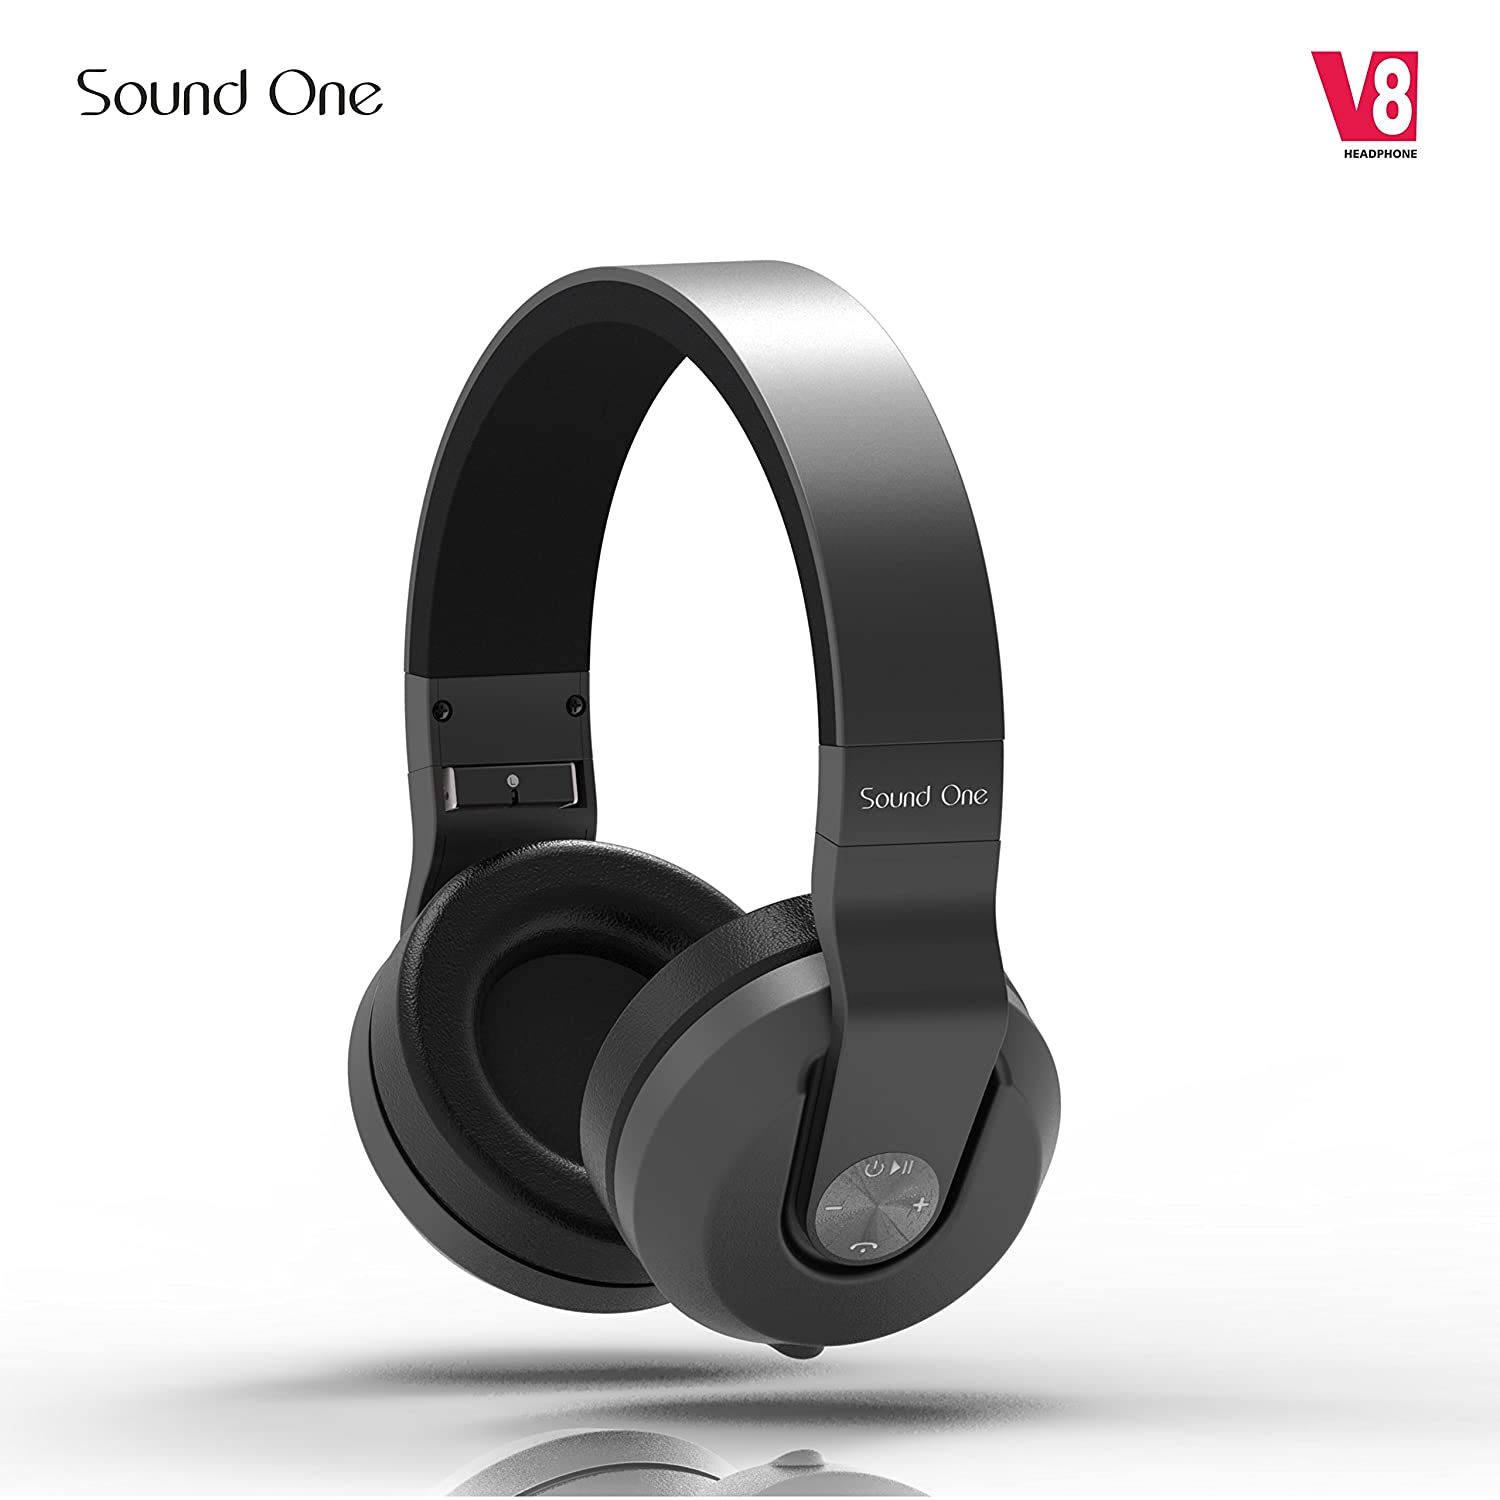 111b9b18d3c Sound One V8 Bluetooth Wireless Headphones with Mic: Amazon.in: Electronics